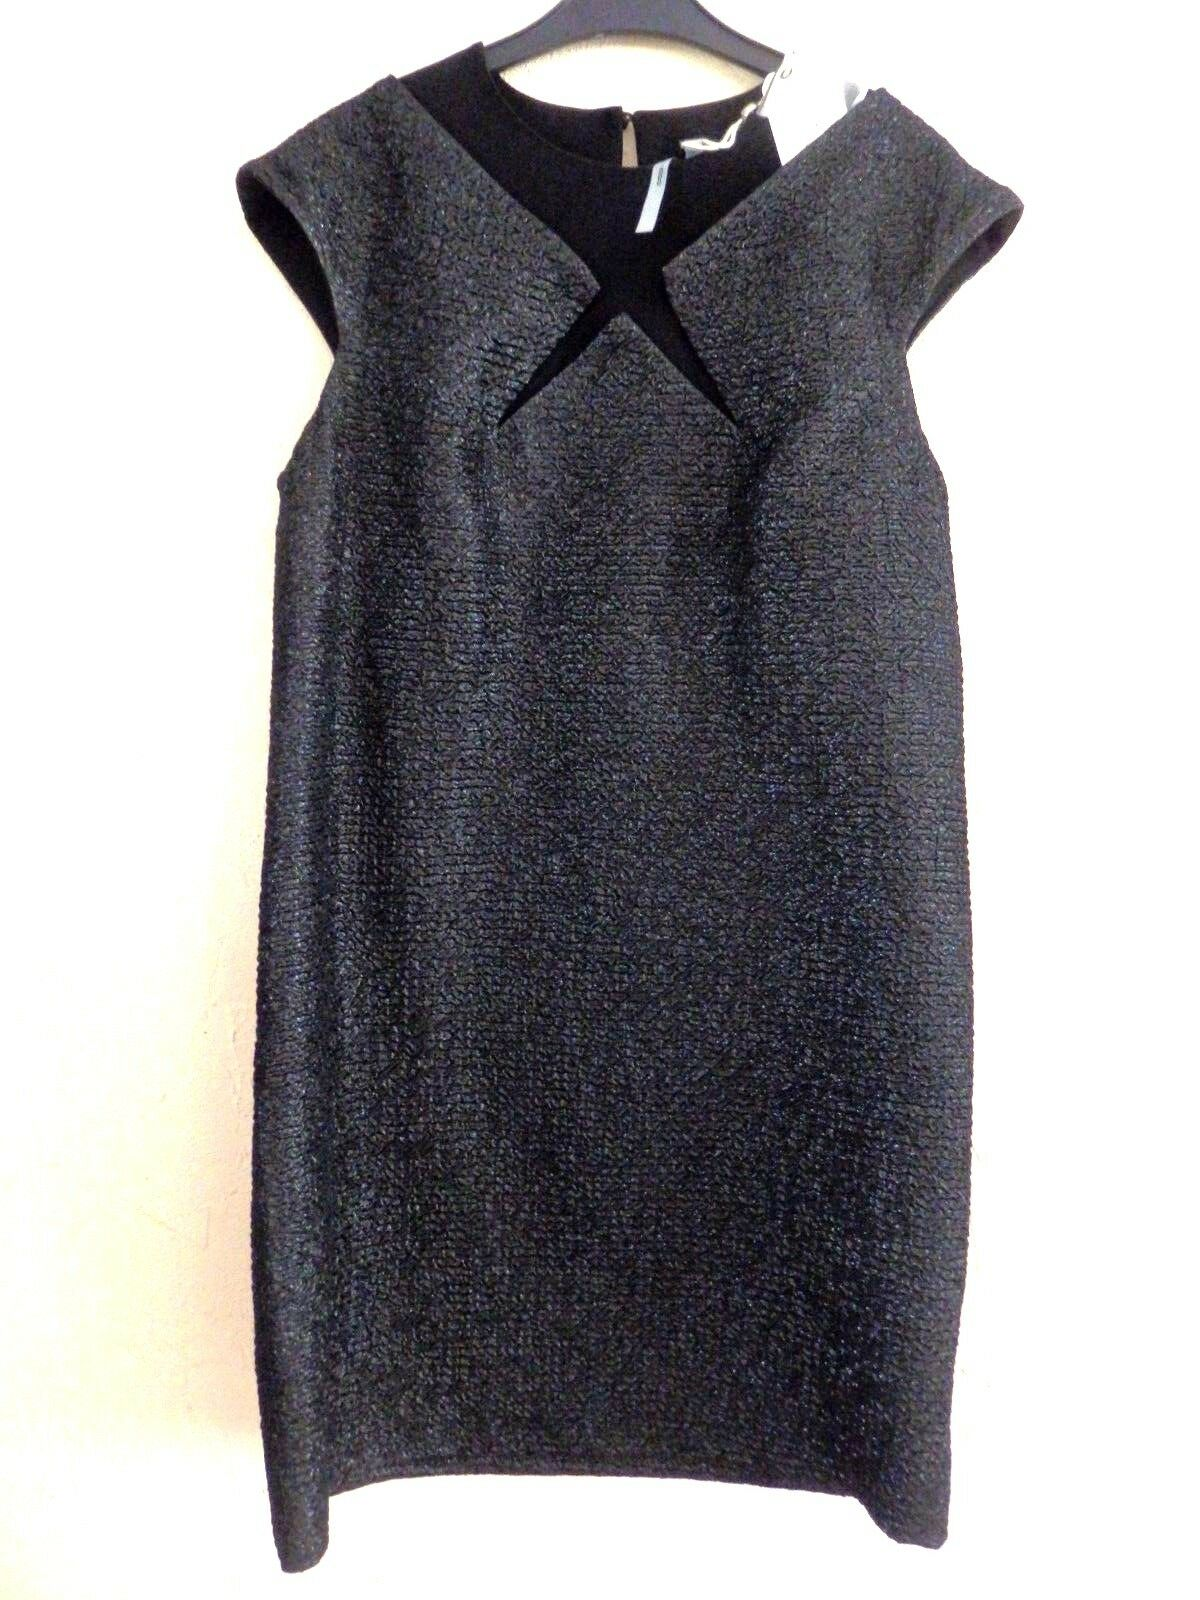 COP COP COP COPINE - Dress   Celebrity   - T.36 fr - new -. authentic d0bac9